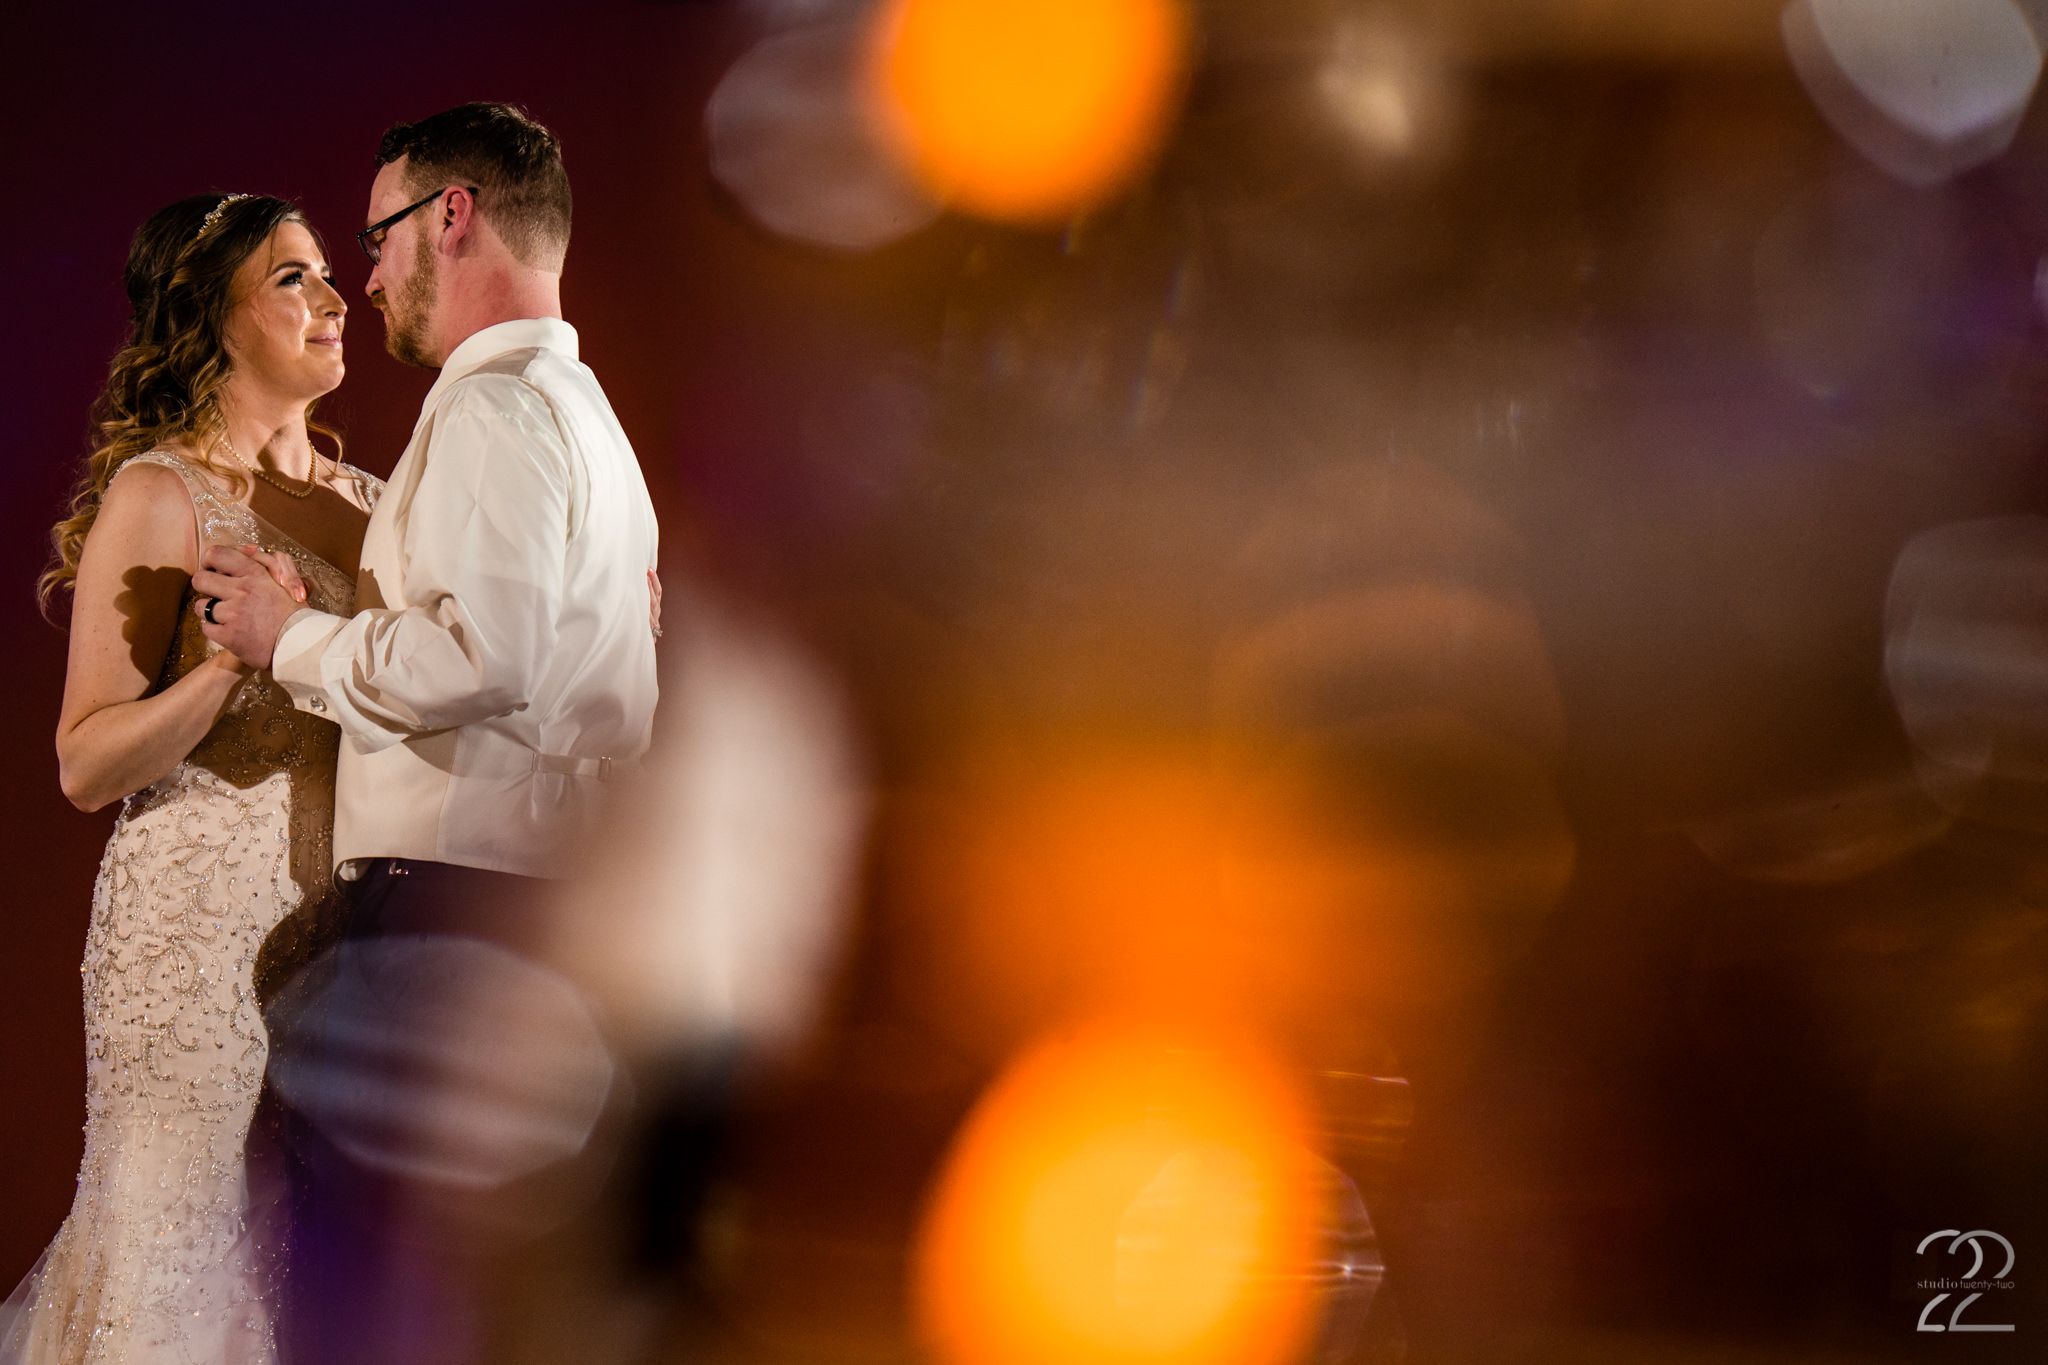 First dances are always a special part of a wedding day, and having a great DJ is part of the wedding day that is important to keep in mind! Finding a great DJ that will keep the party going is crucial to a fantastic wedding reception.